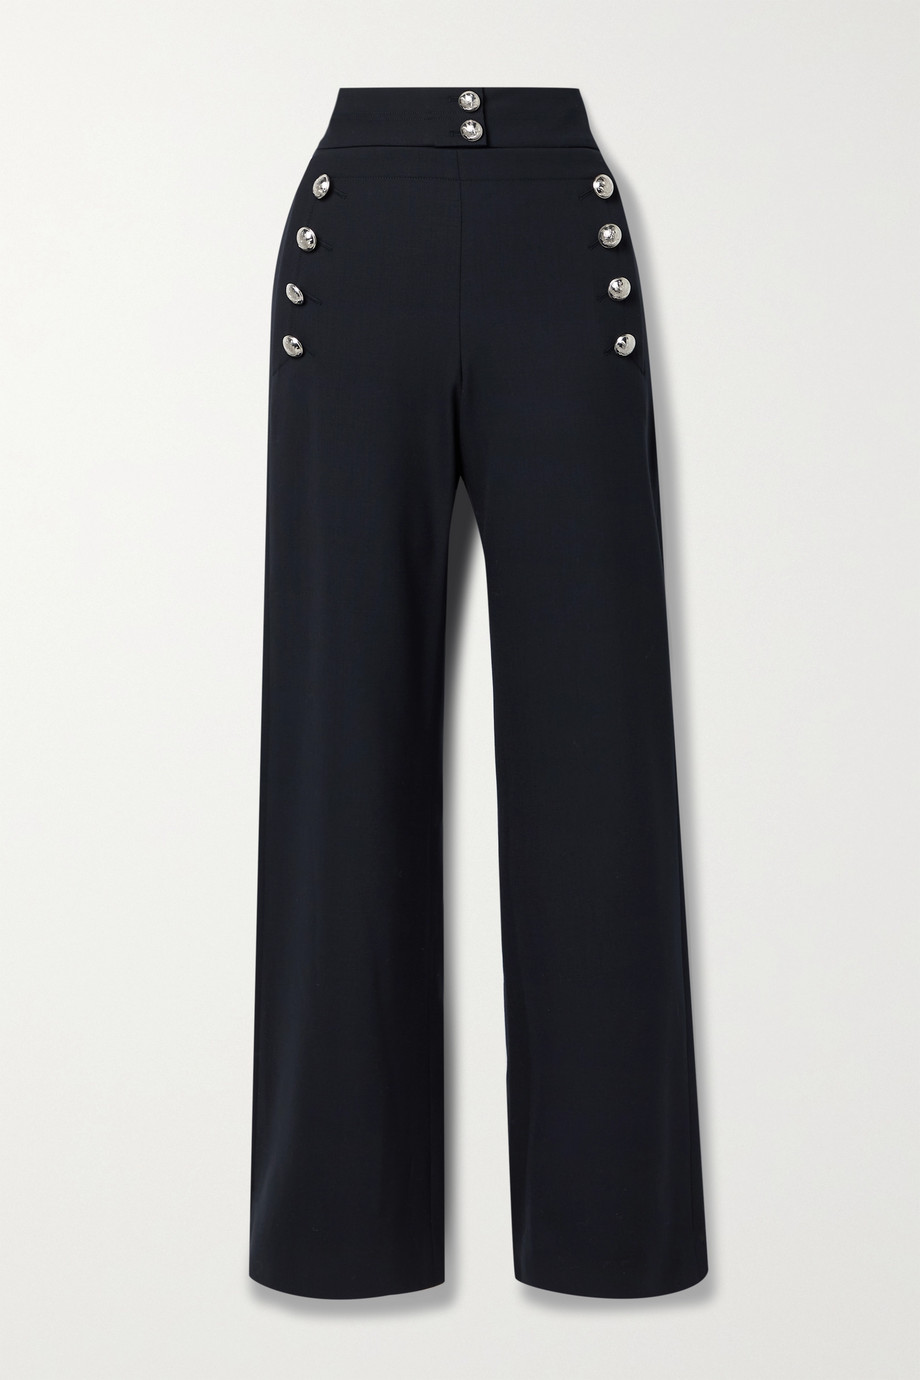 Chloé Button-embellished stretch-wool wide-leg pants